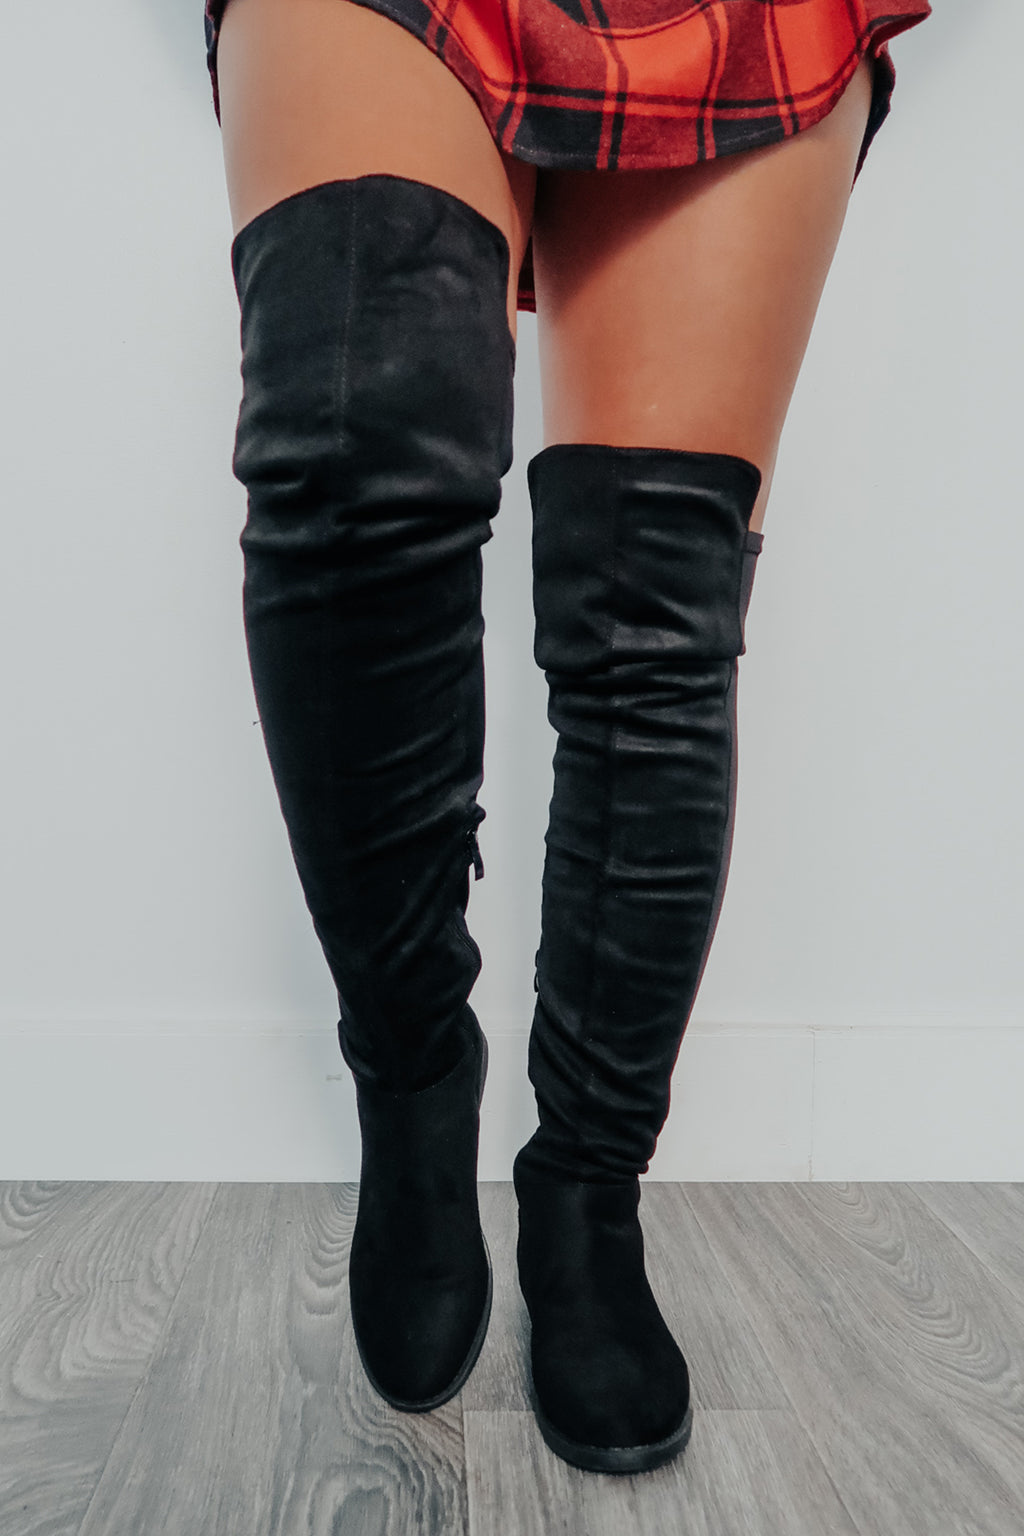 REORDER: Changing Seasons Boots: Black